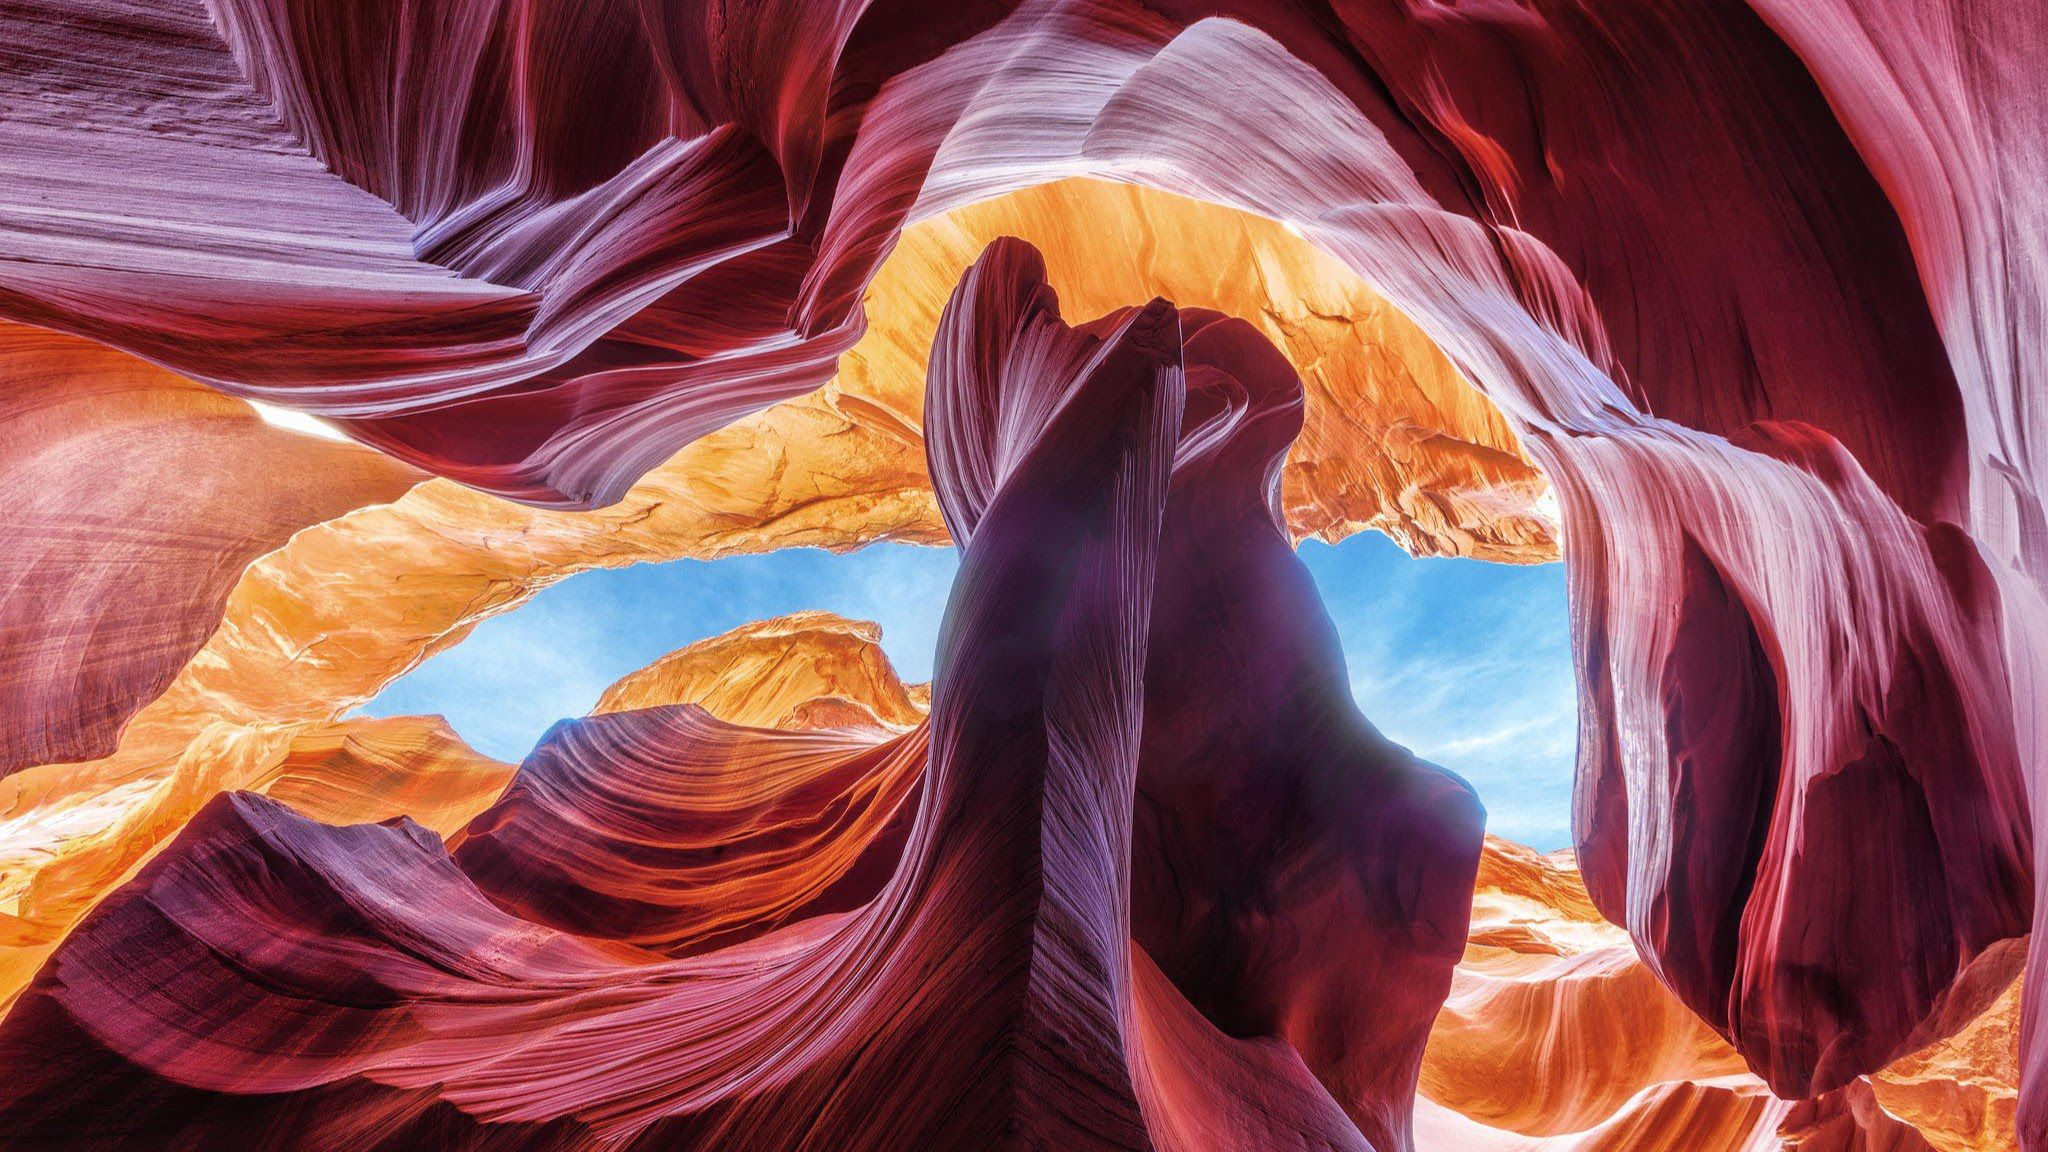 Antelope Canyon Images